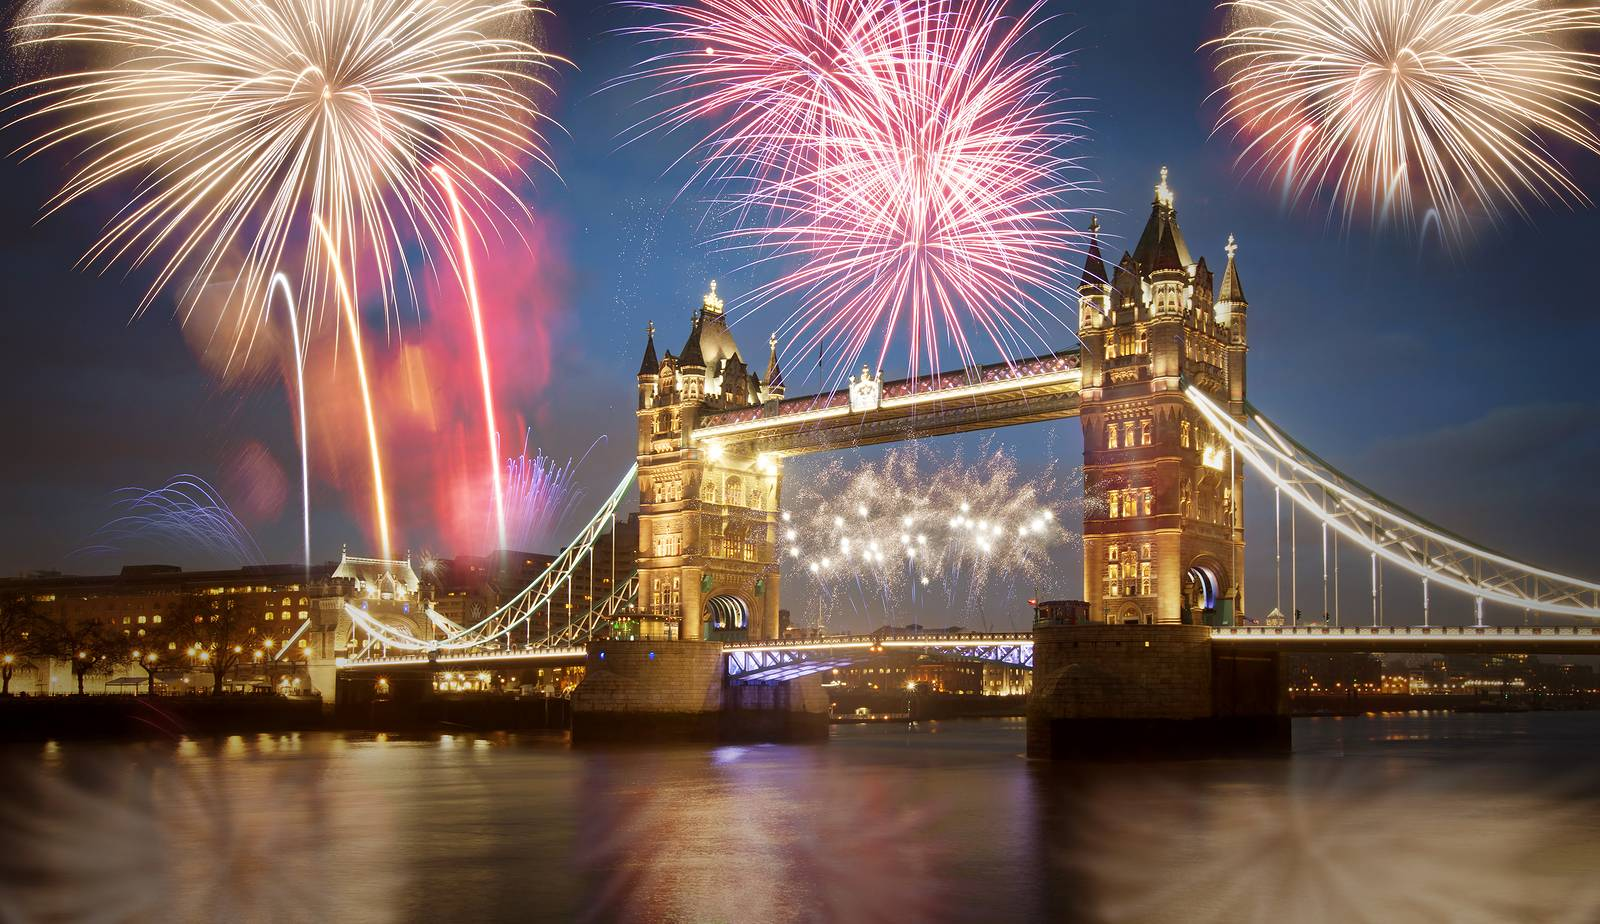 Image of New Year's fireworks